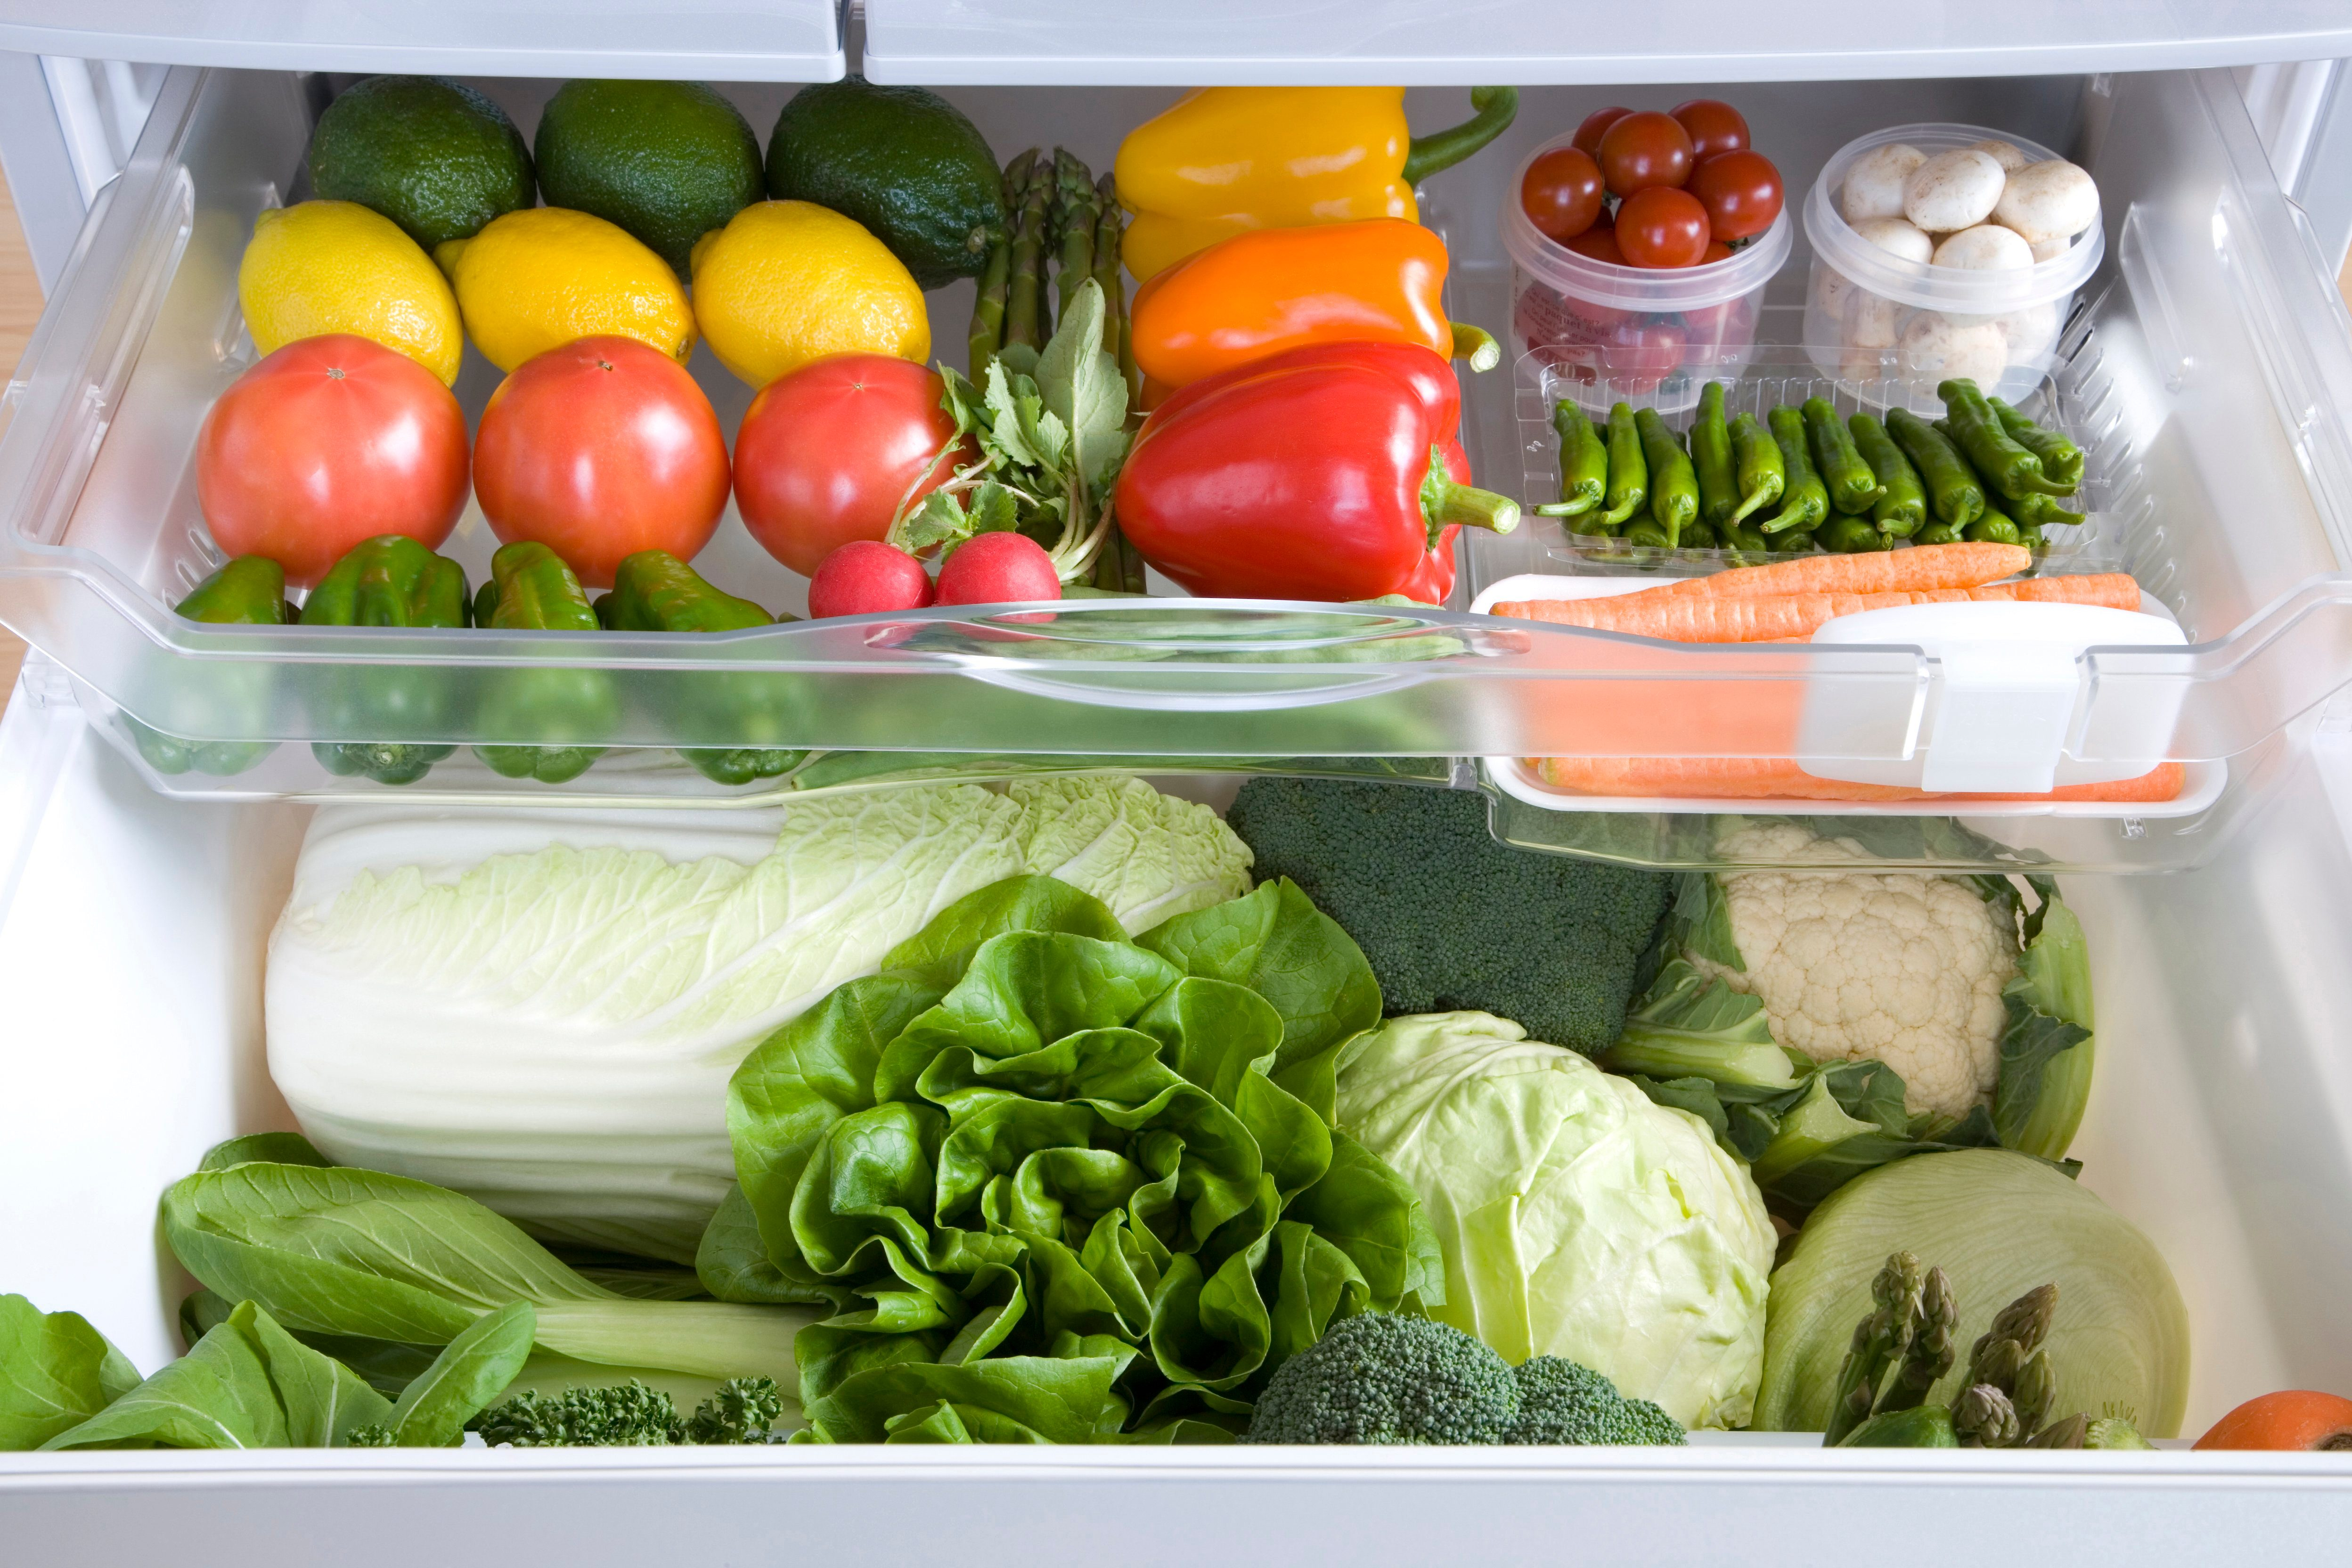 Veggie drawer in the fridge